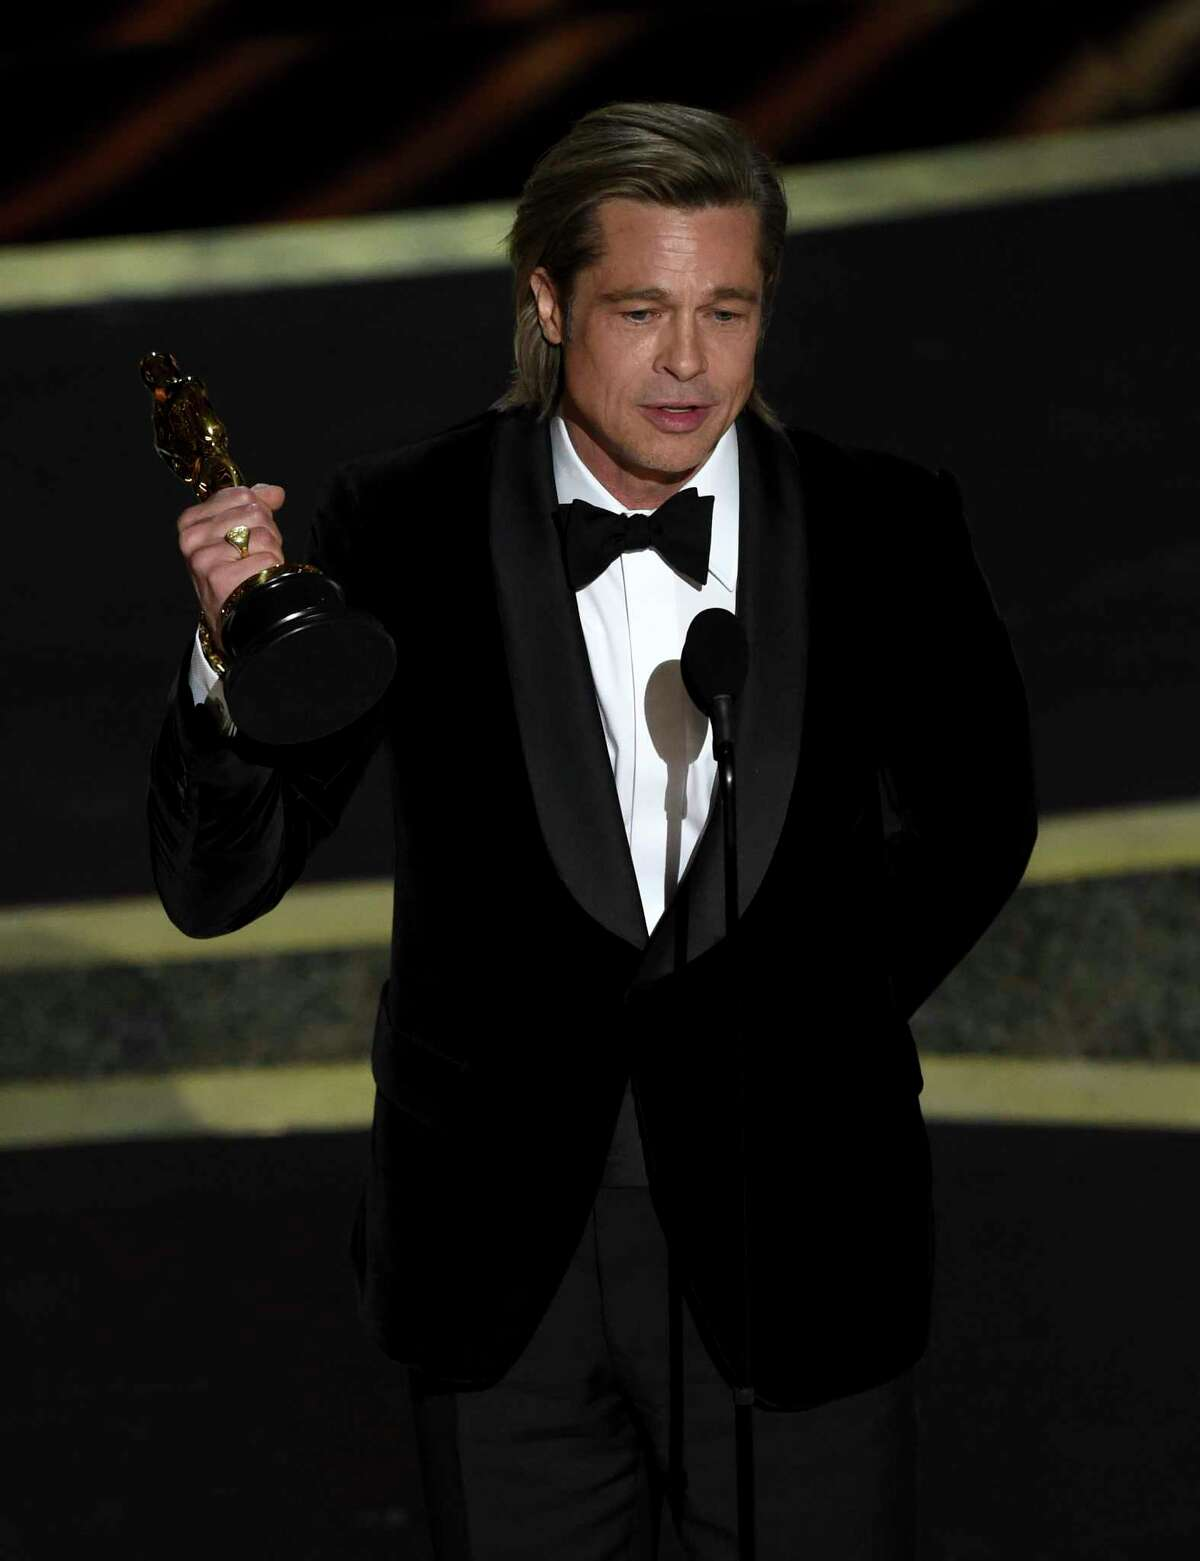 """Brad Pitt accepts the award for best performance by an actor in a supporting role for """"Once Upon a Time in Hollywood"""" at the Oscars on Sunday, Feb. 9, 2020, at the Dolby Theatre in Los Angeles."""